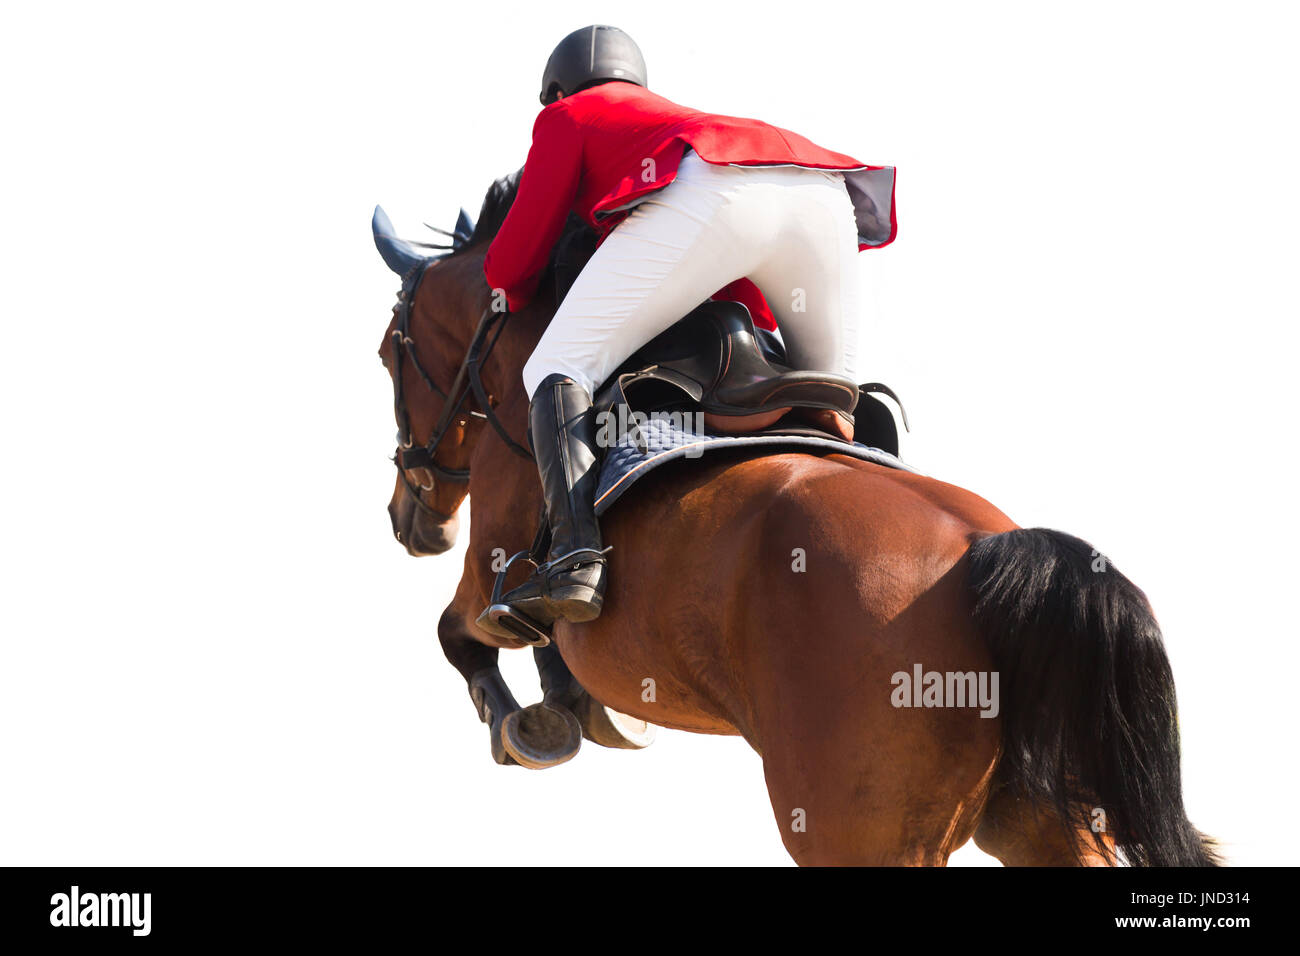 Equestrian Sports, Horse Jumping Event, Isolated on White Background - Stock Image